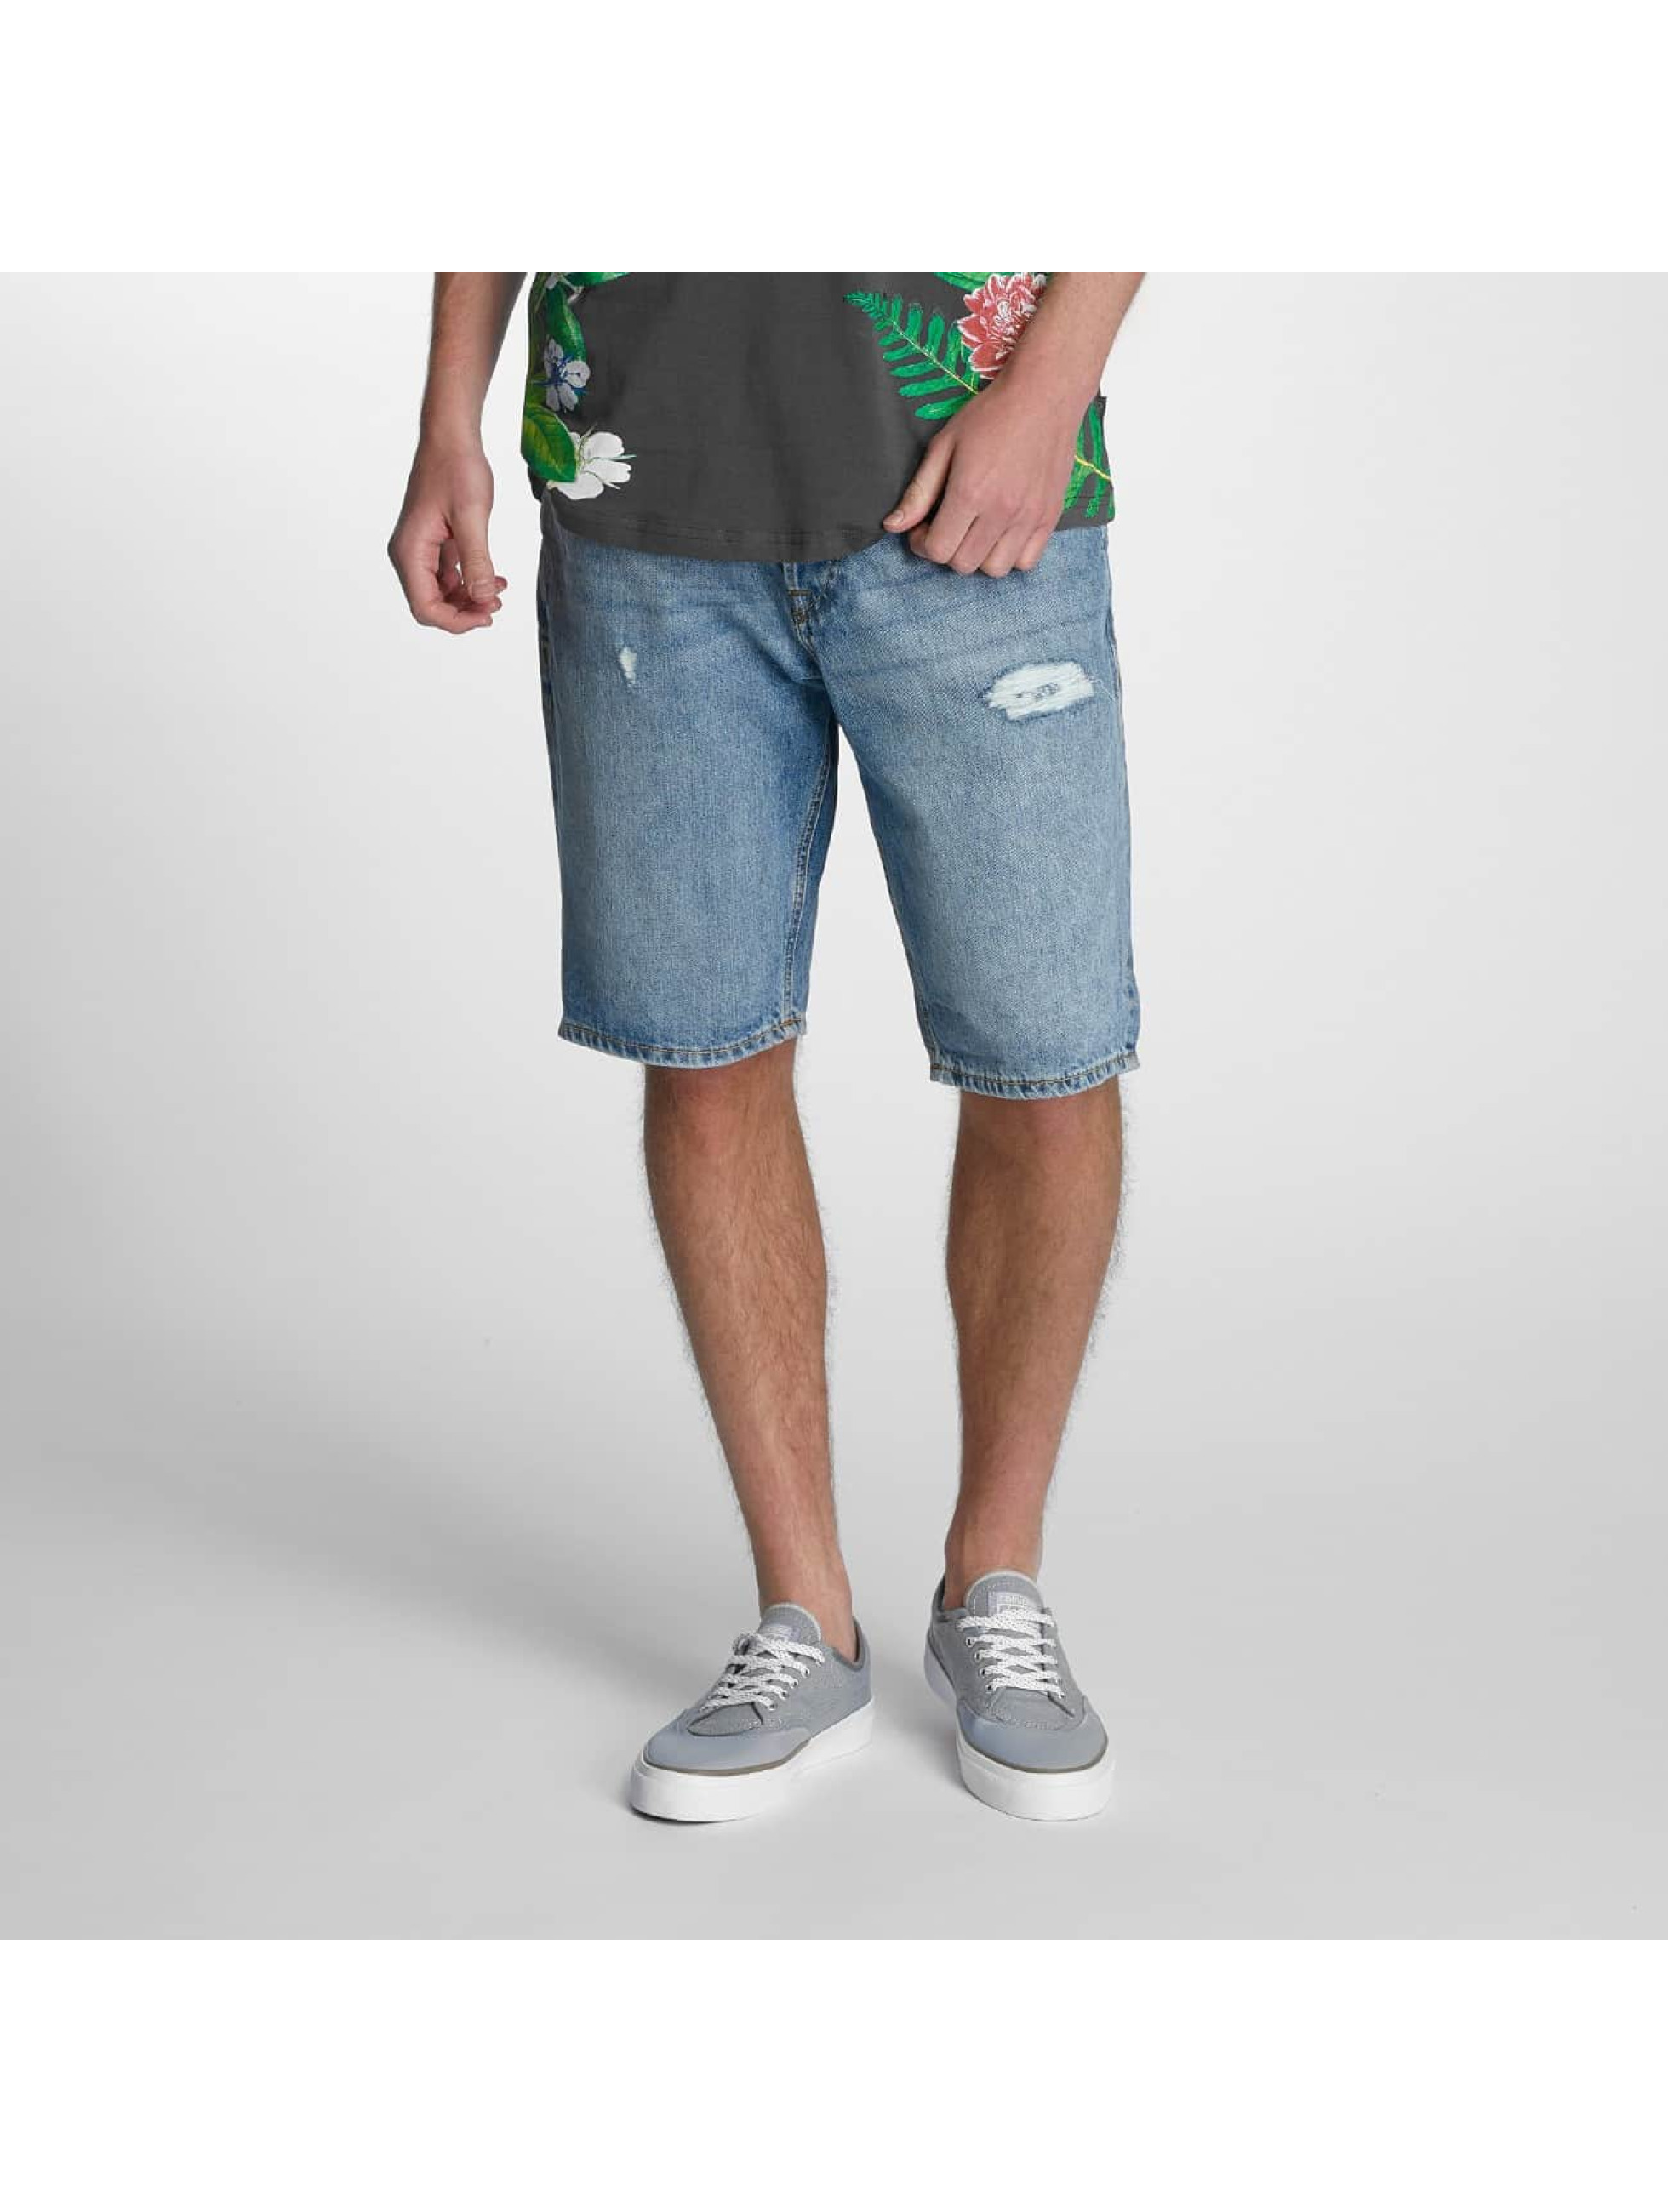 Jack & Jones Pantalon / Shorts jjiRick jjOriginal en bleu